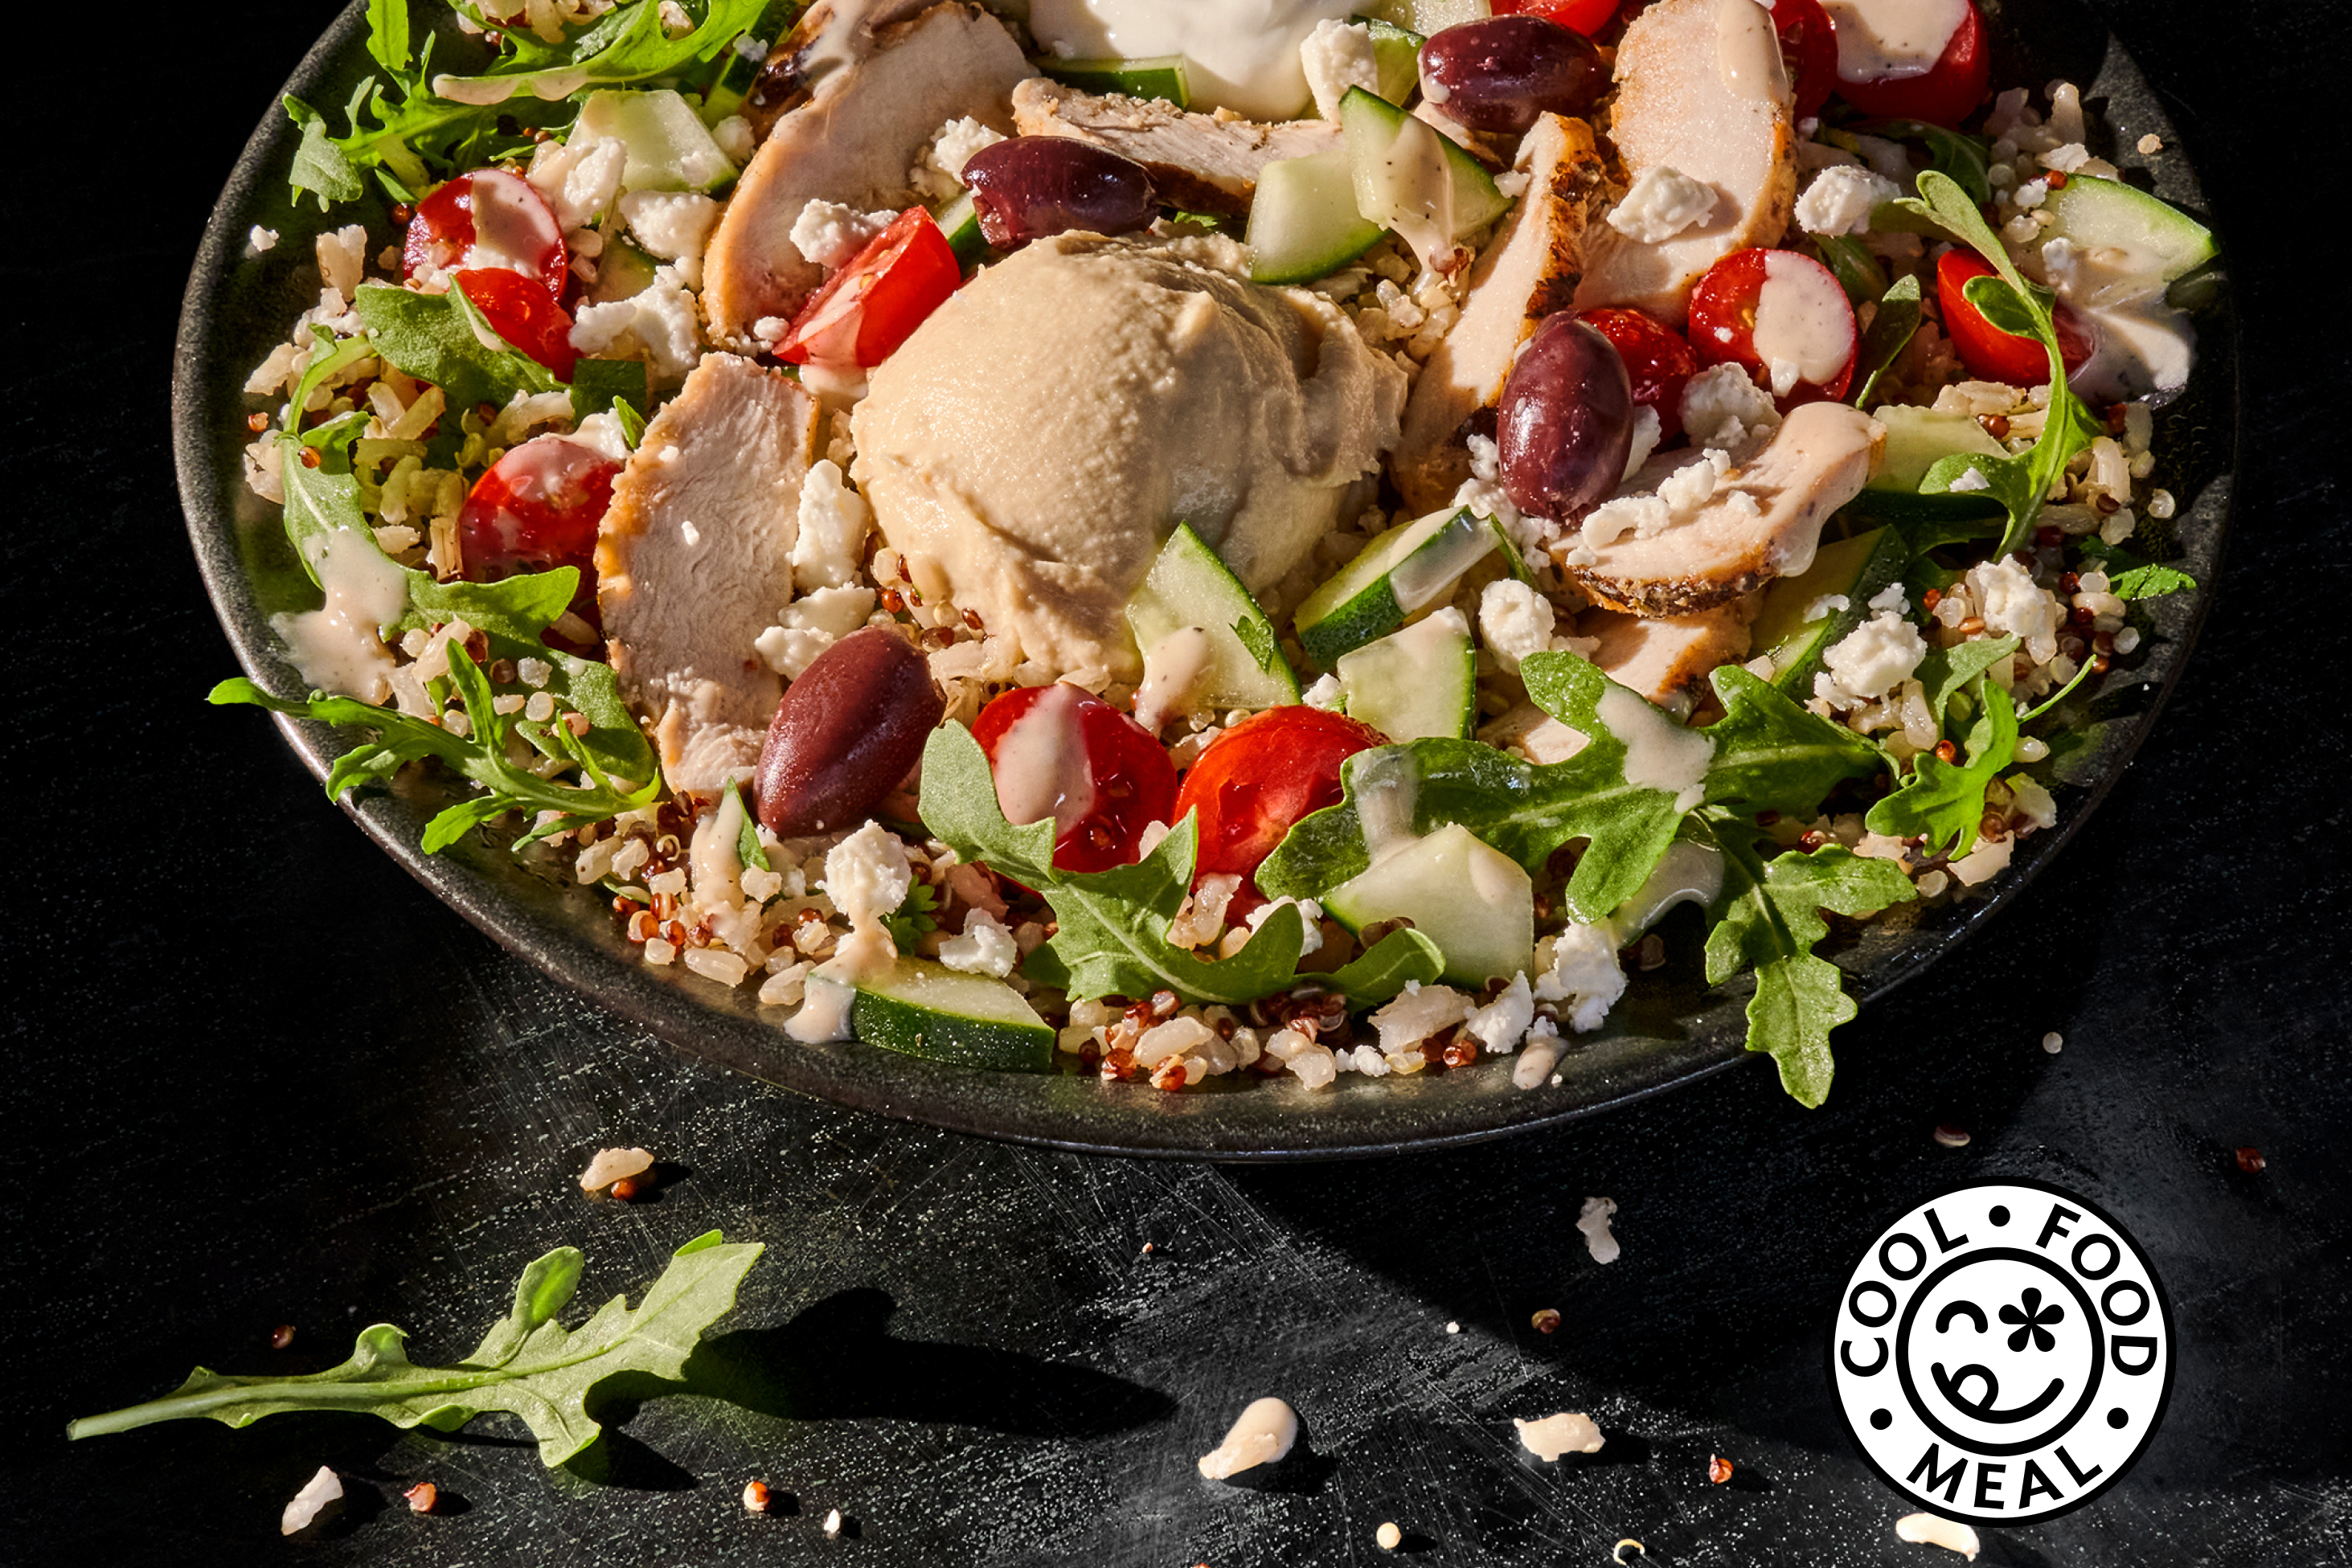 Panera Bread highlights meals that carry a lower carbon footprint